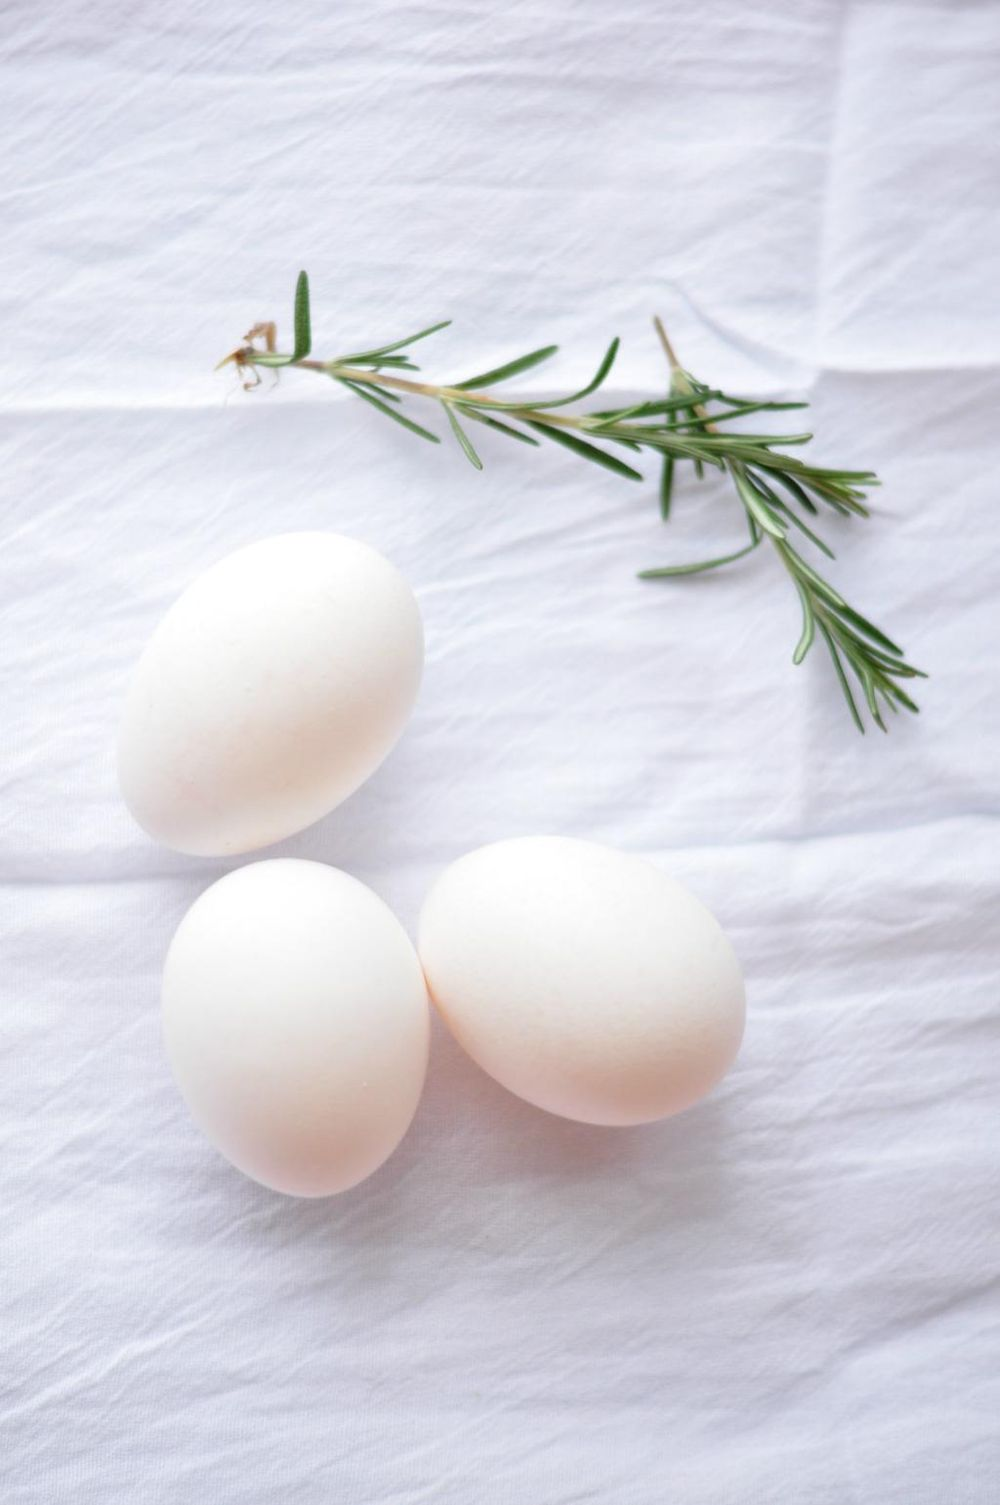 Simple Eggs - image 1 - student project